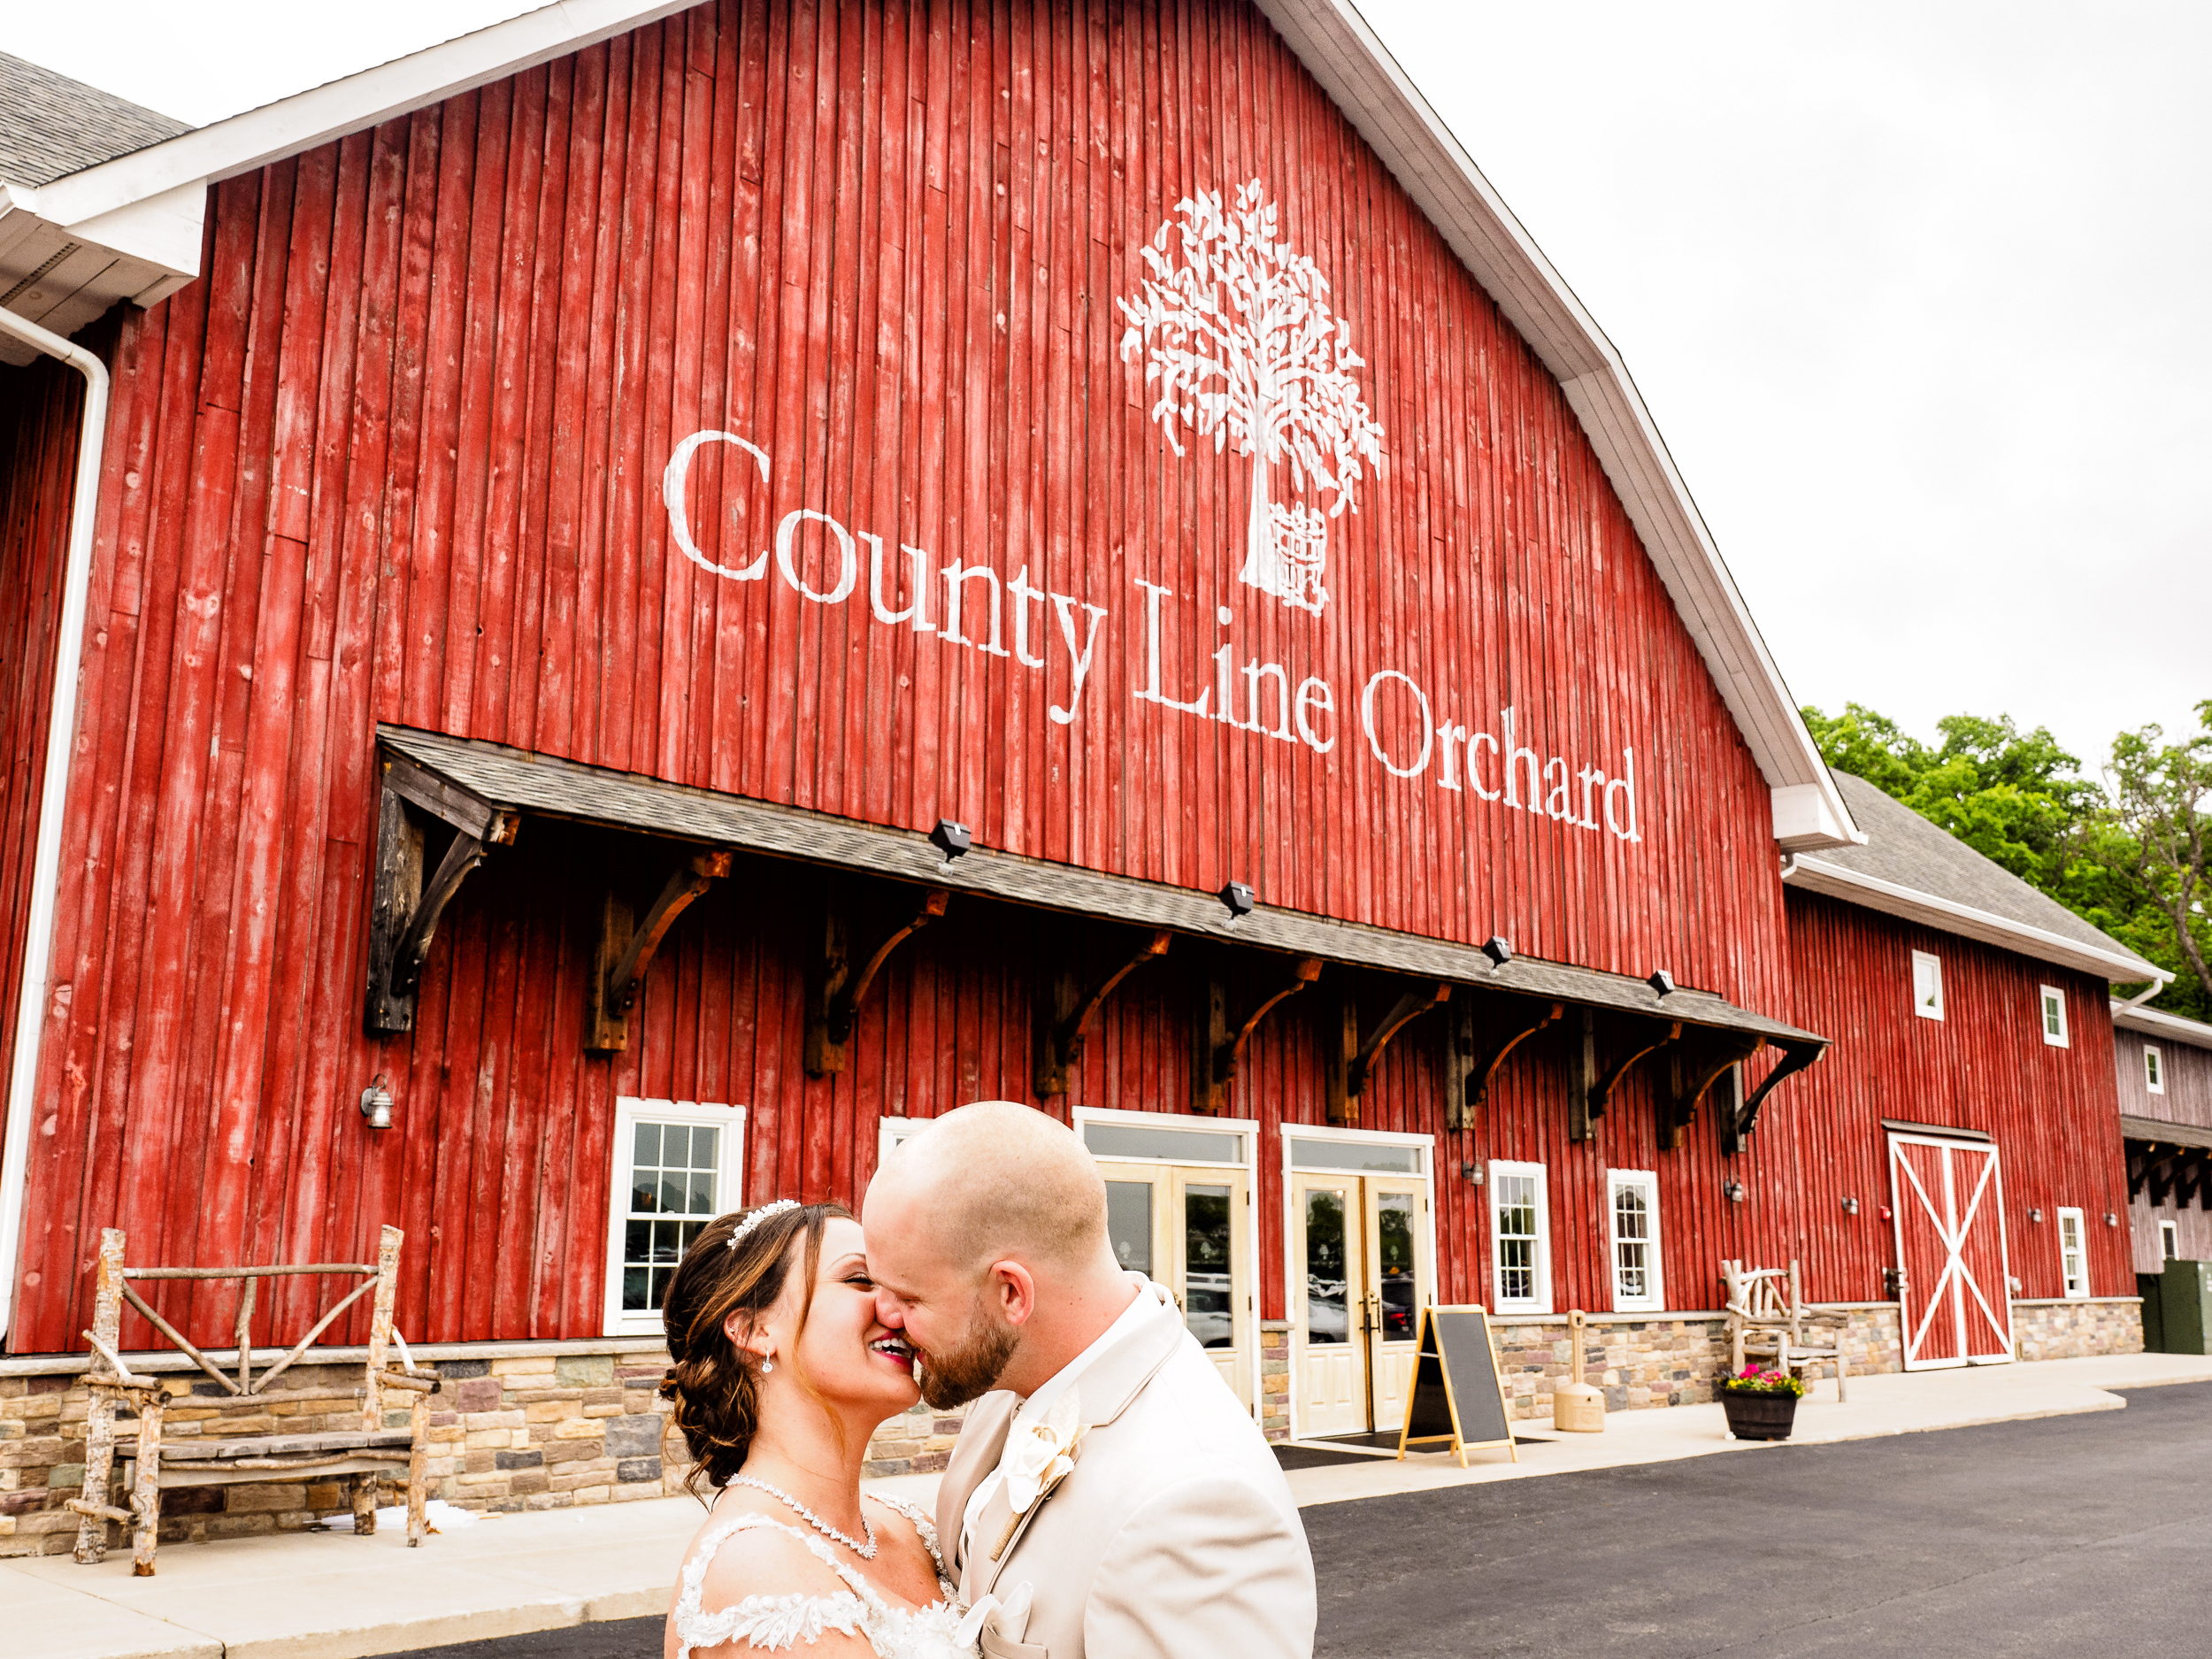 county-line-orchard-wedding-venue-photo0021.jpg